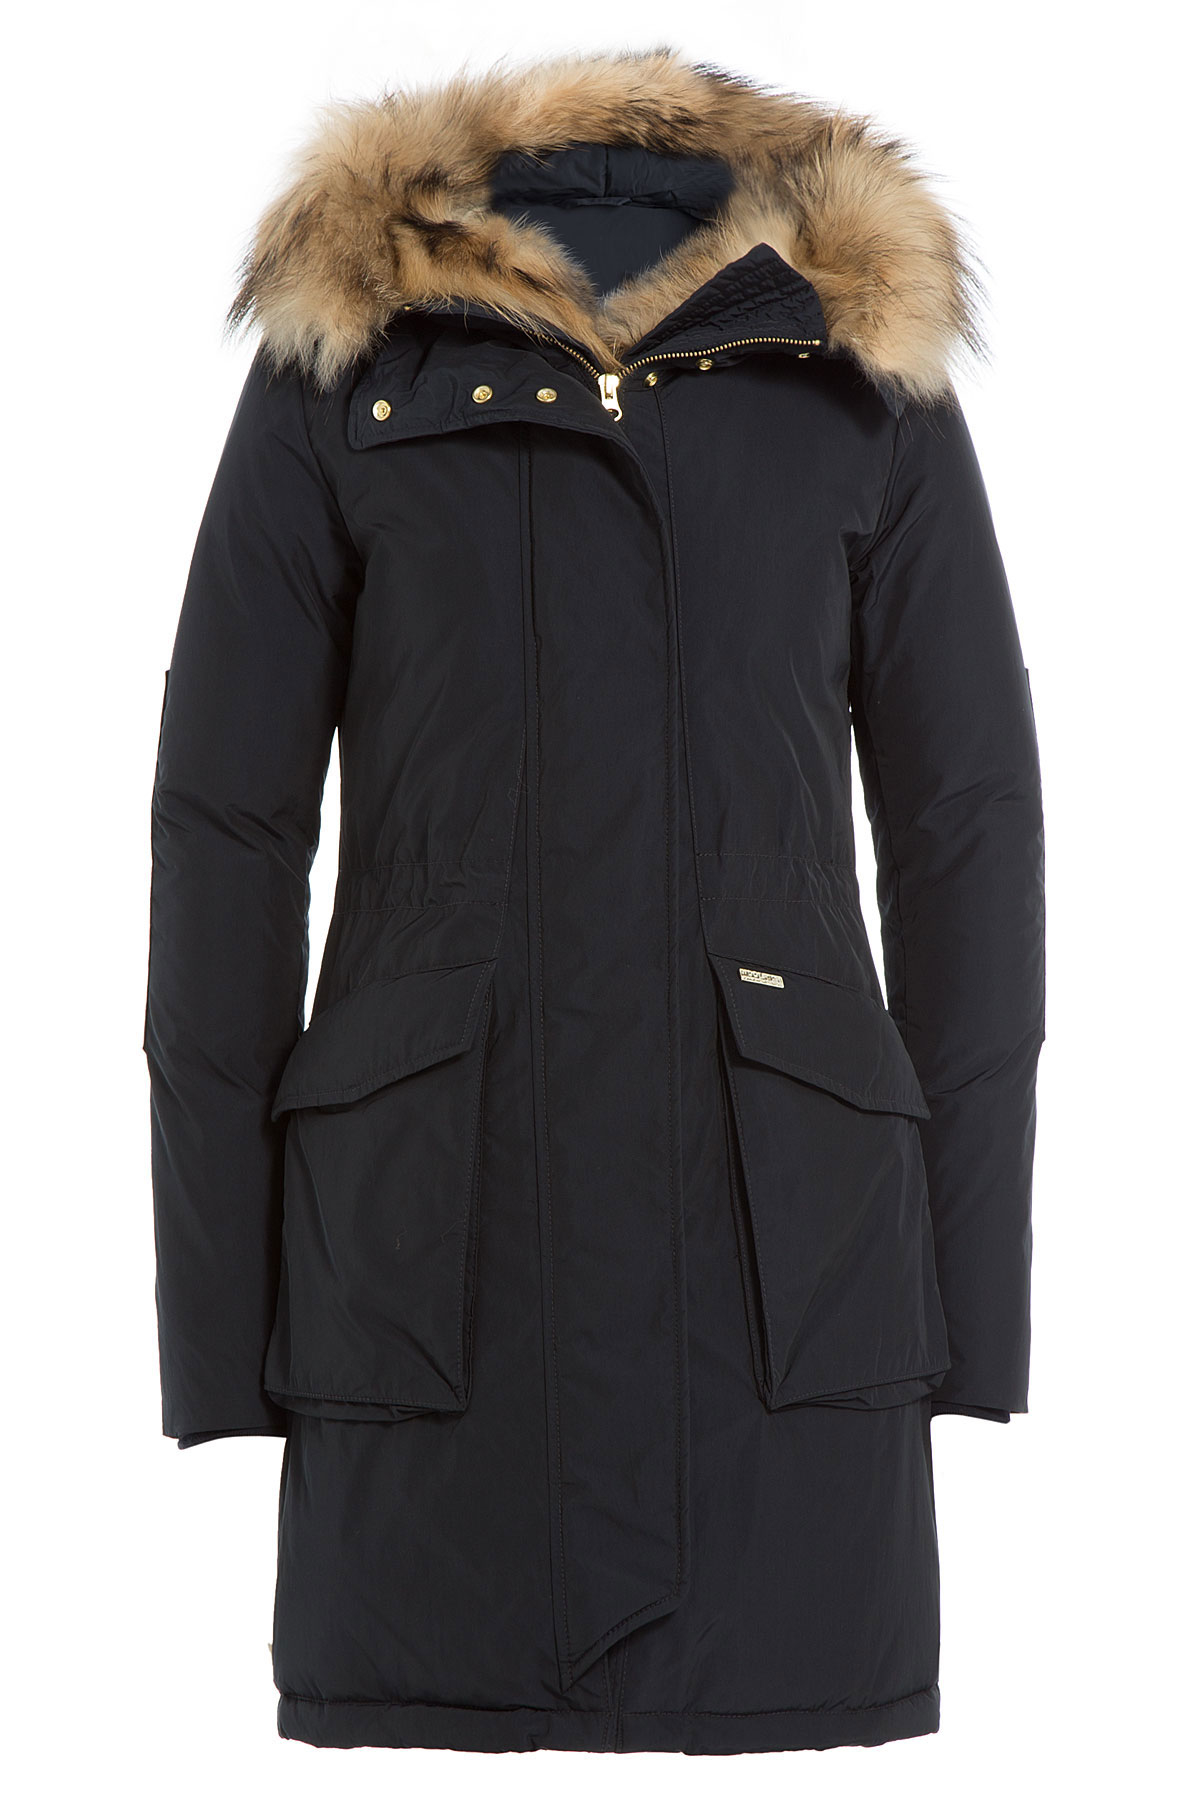 woolrich women 39 s military eskimo parka. Black Bedroom Furniture Sets. Home Design Ideas